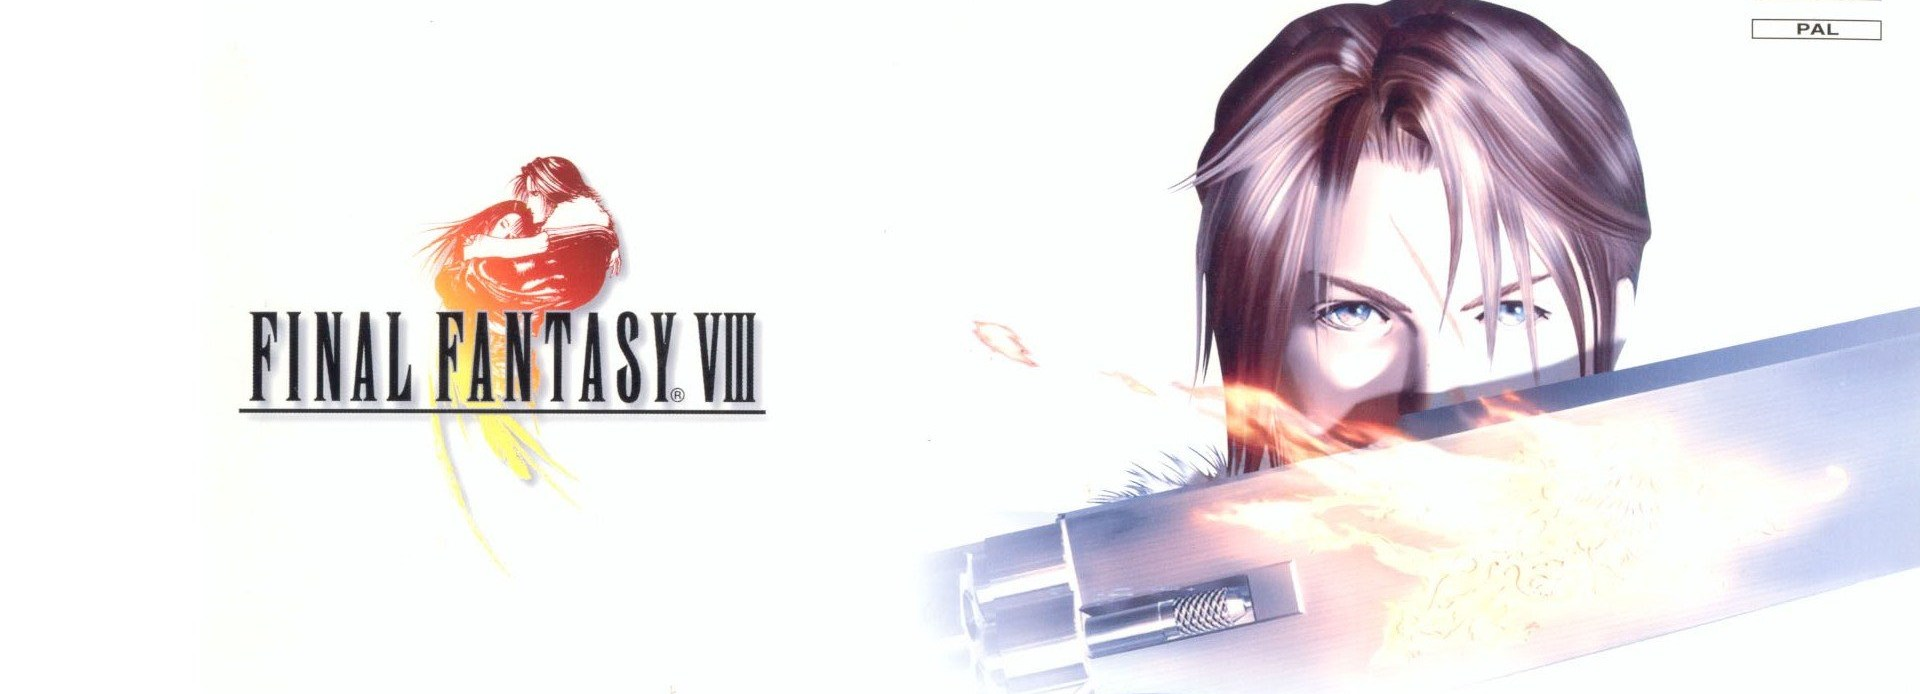 Final Fantasy VIII 4K Background